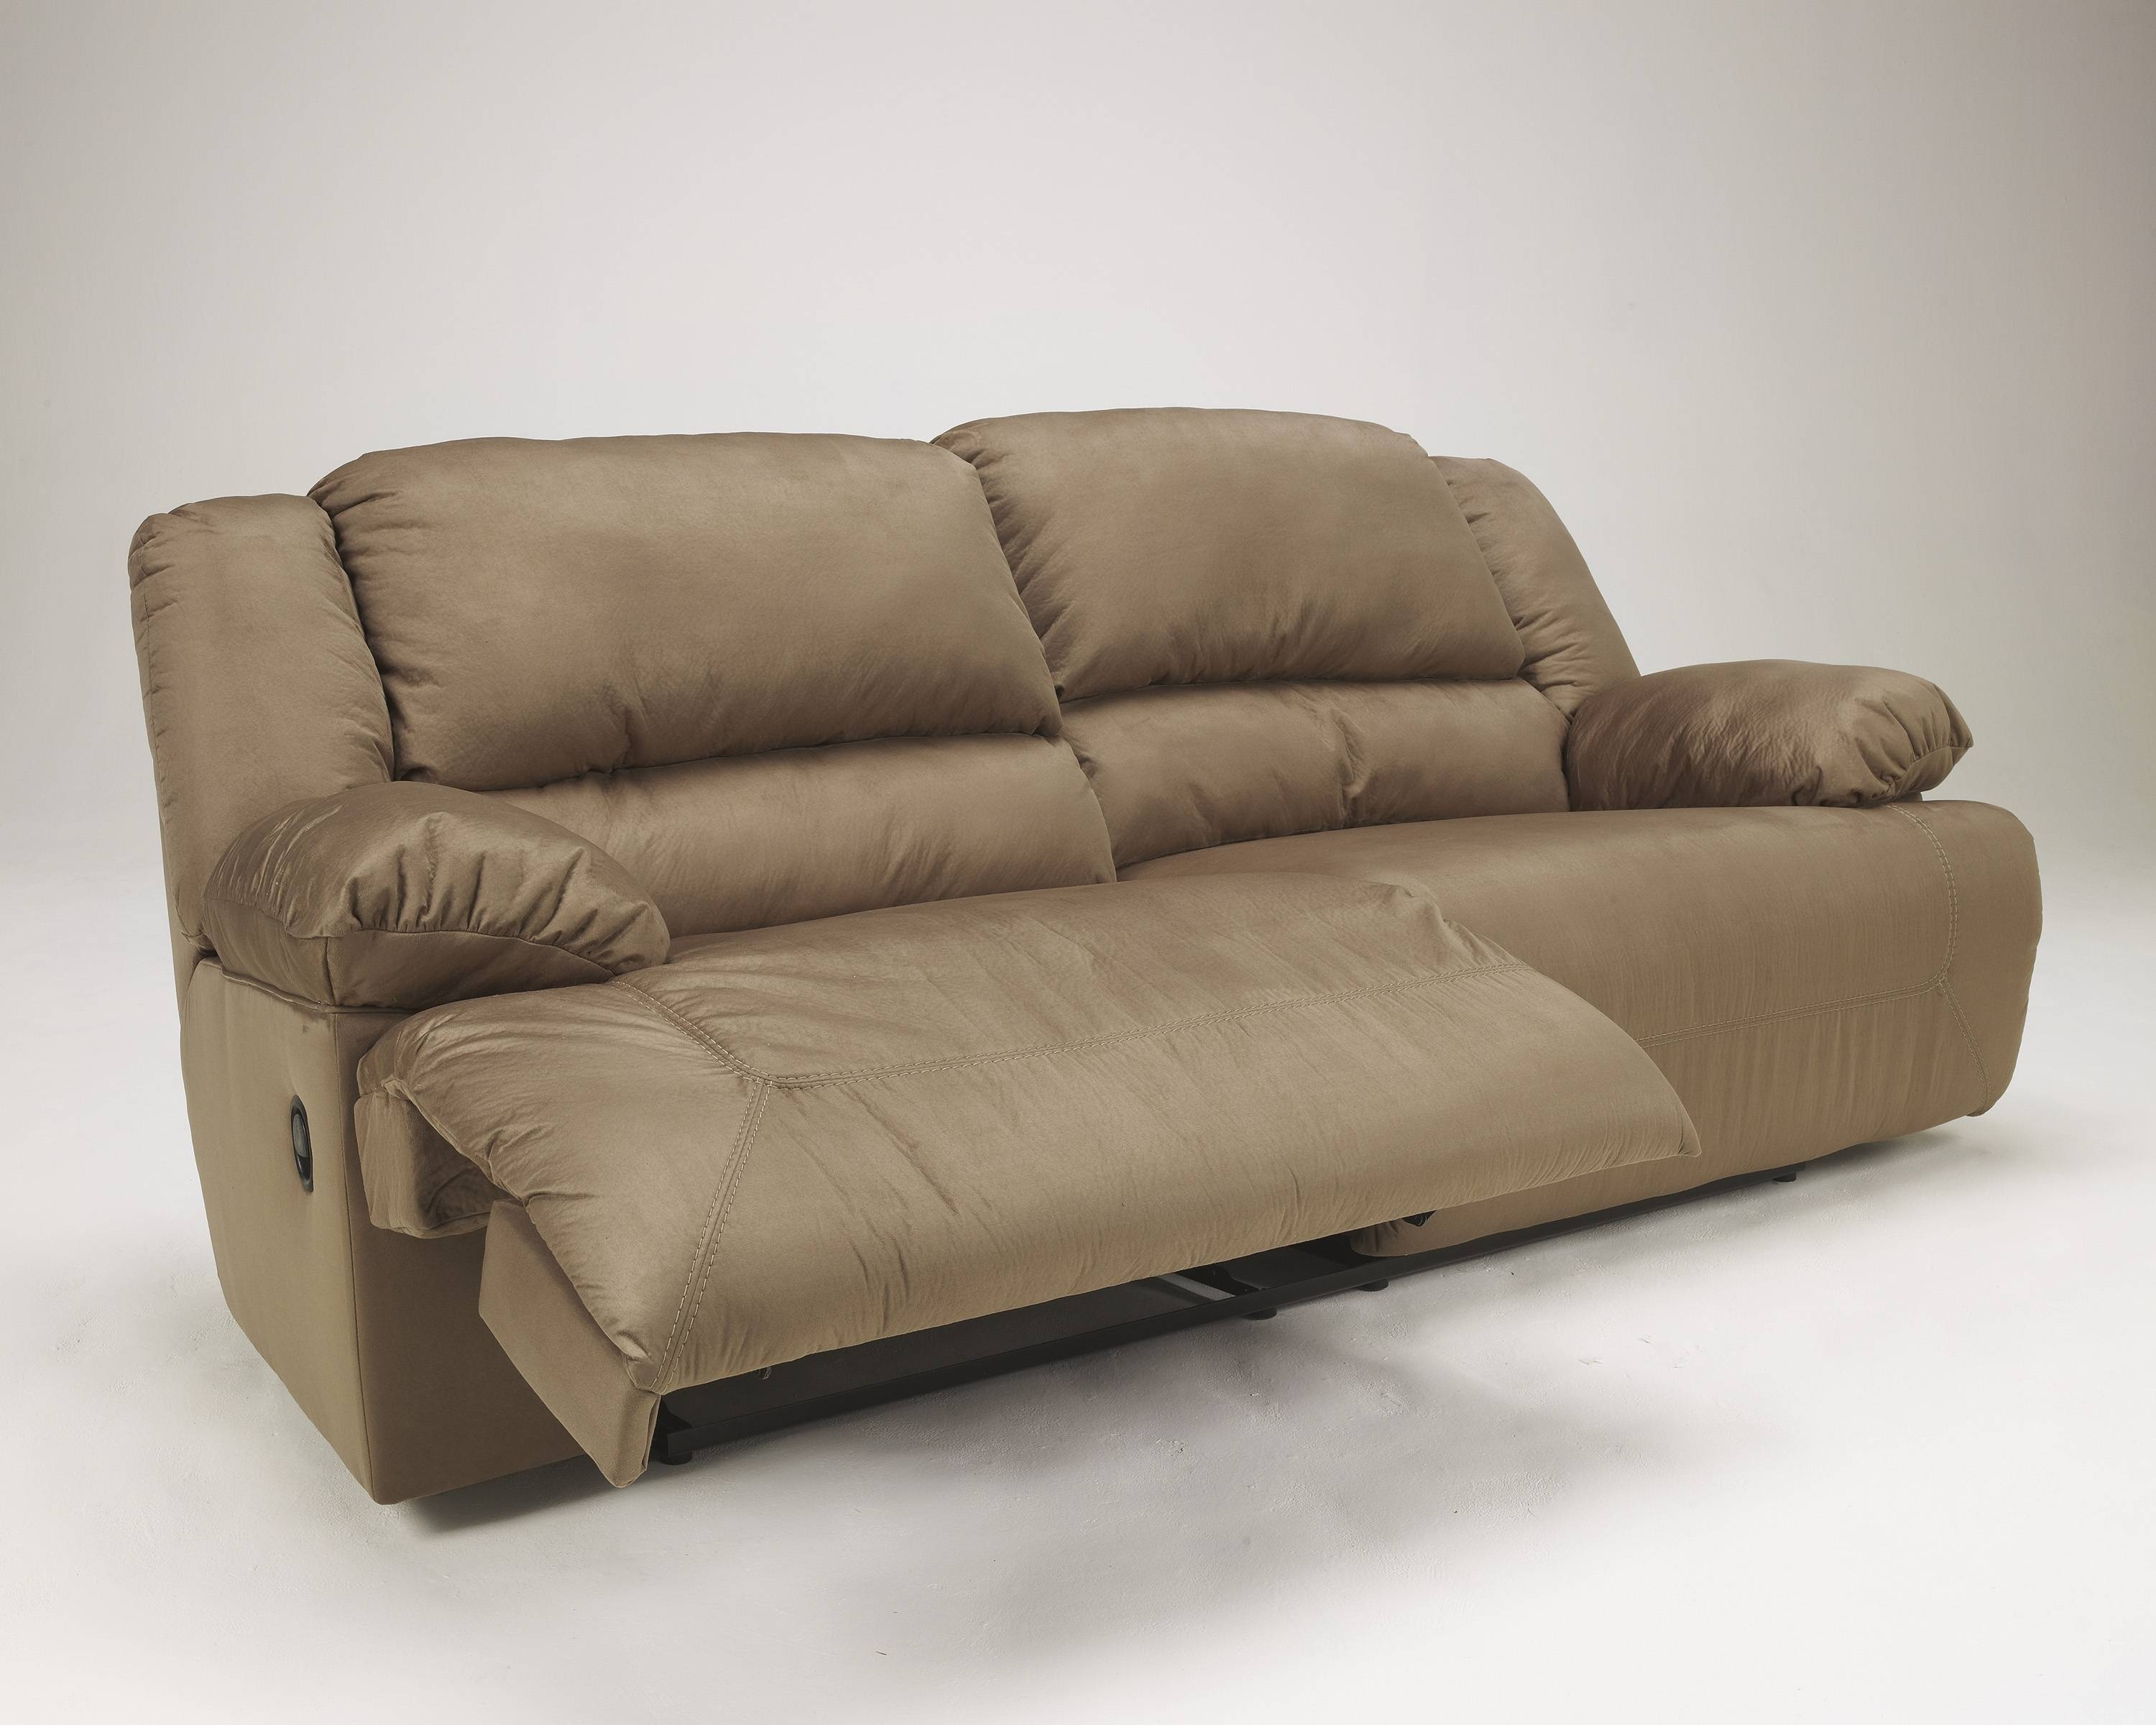 Hogan Contemporary Mocha 2- Seat Reclining Sofa | Living Rooms for Recliner Sofa Chairs (Image 16 of 30)